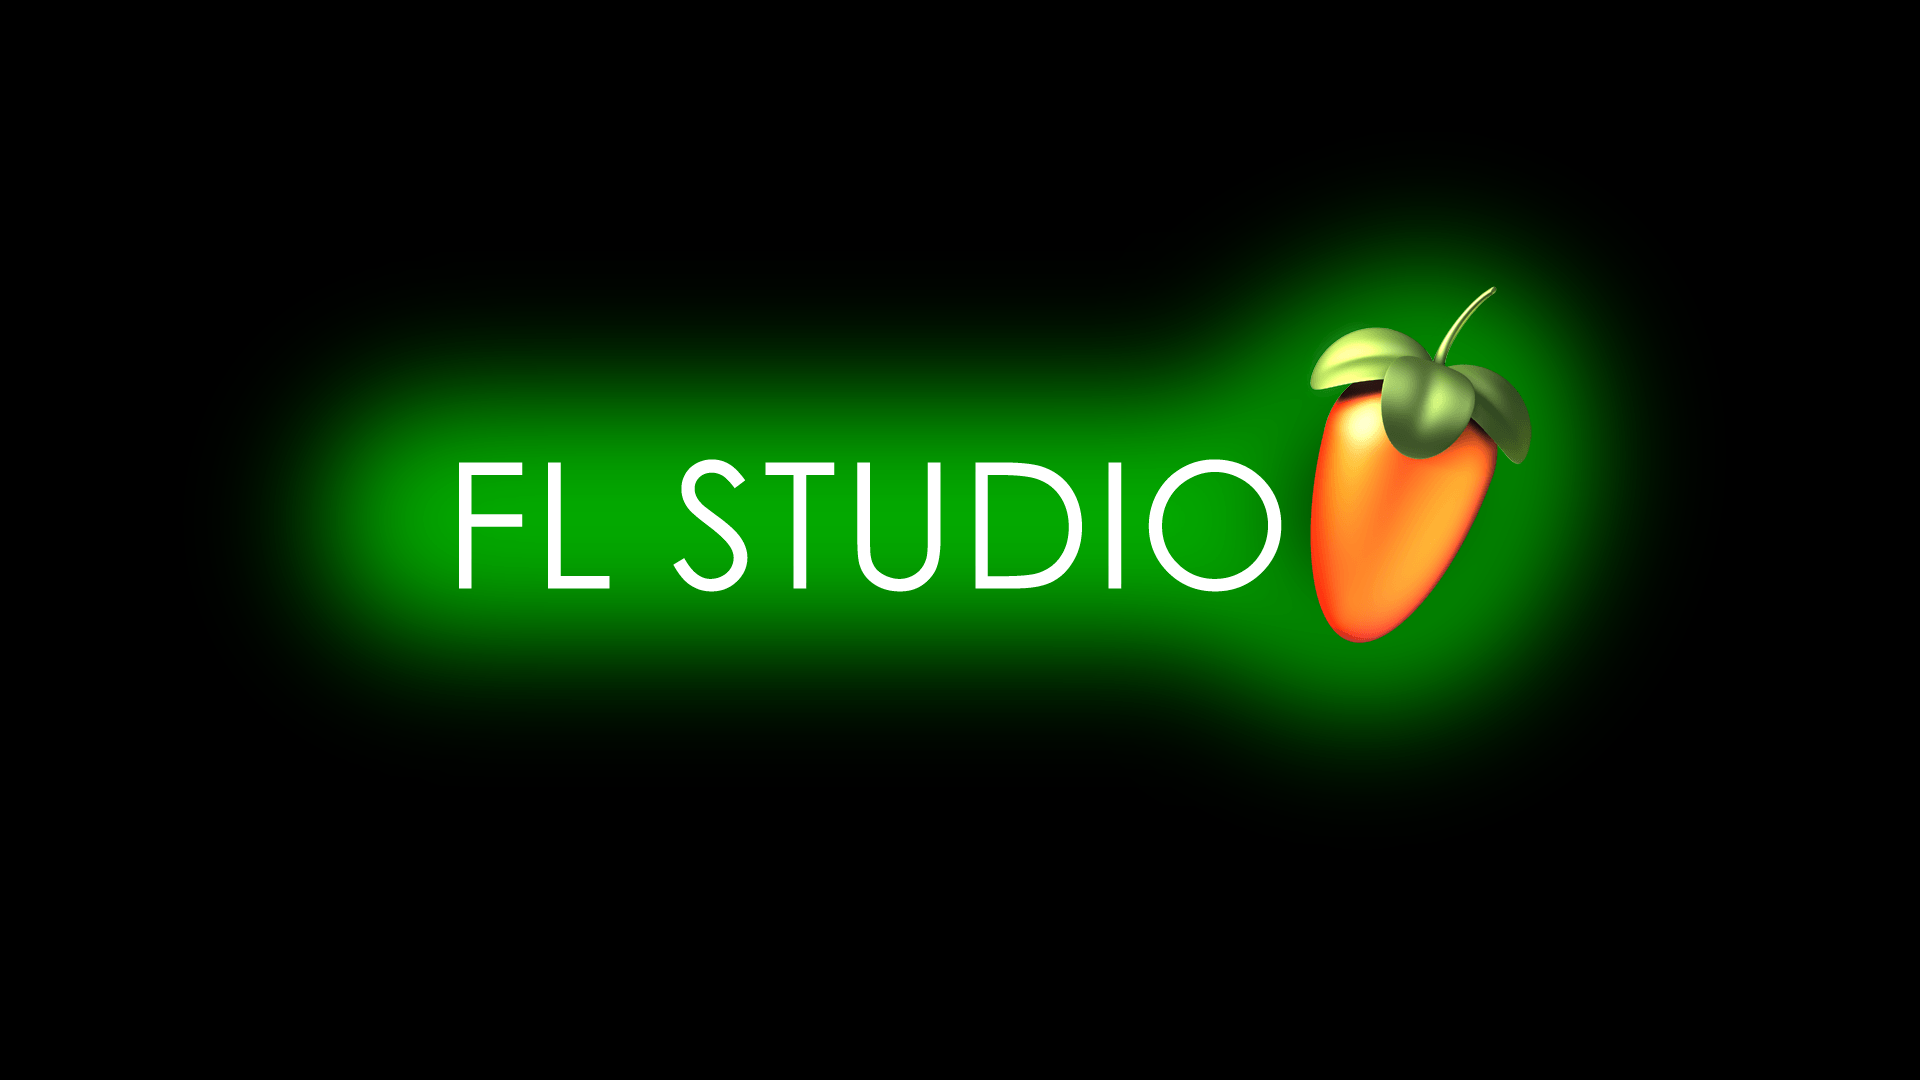 W.E. please read this article on FL Studio